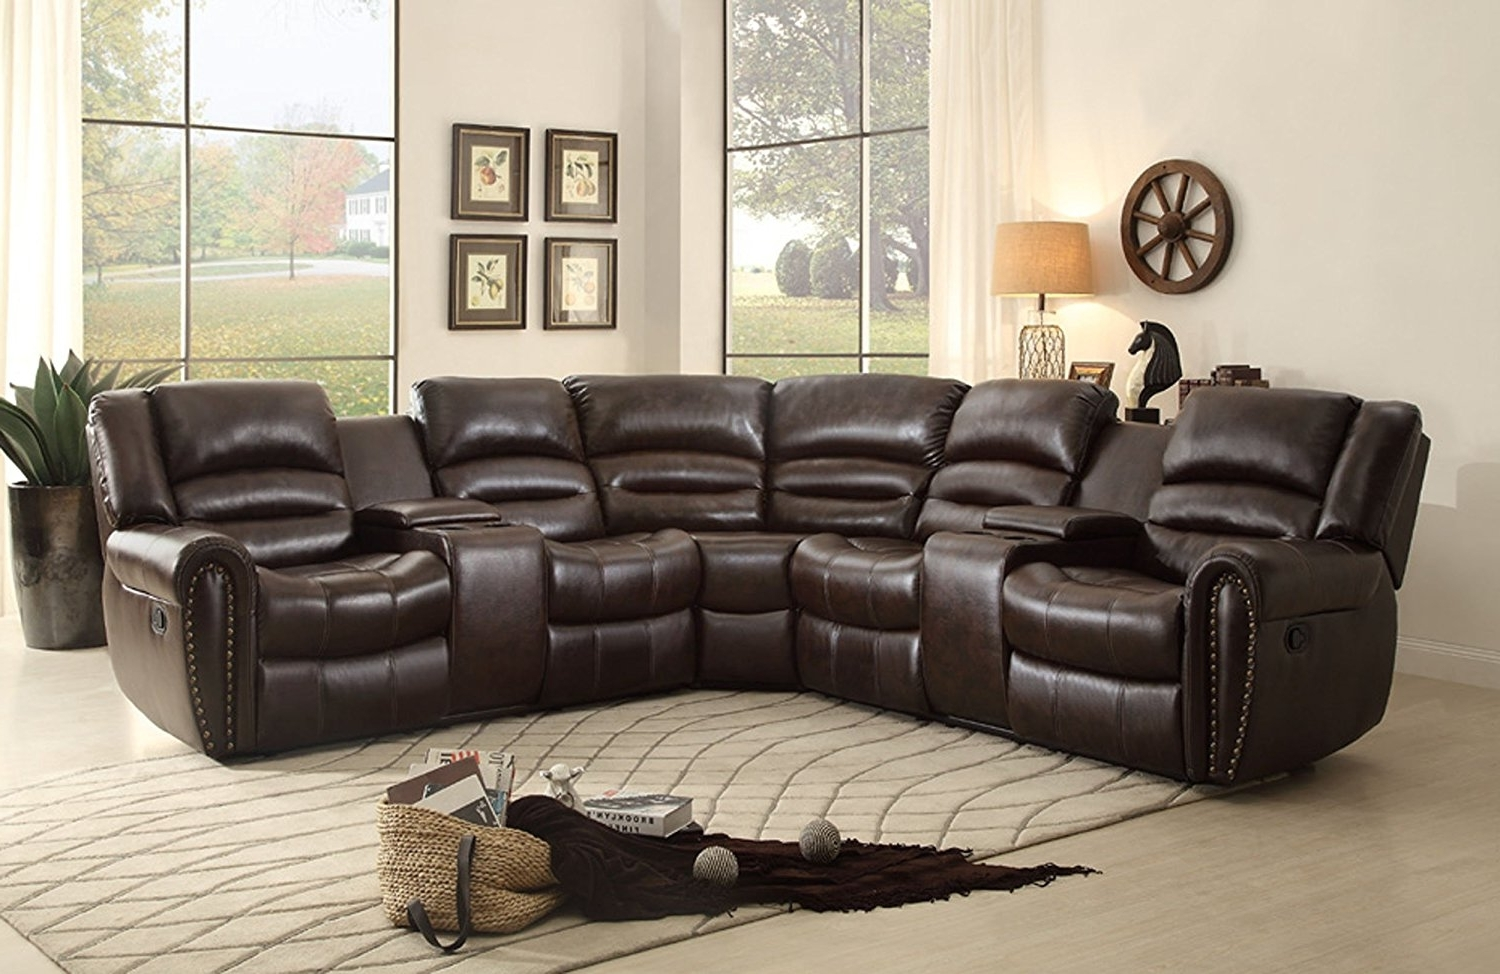 Best And Newest Sofa : Small Leather Sectional Sofa With Recliner Leather Recliner Pertaining To Sectional Sofas With Cup Holders (View 3 of 15)